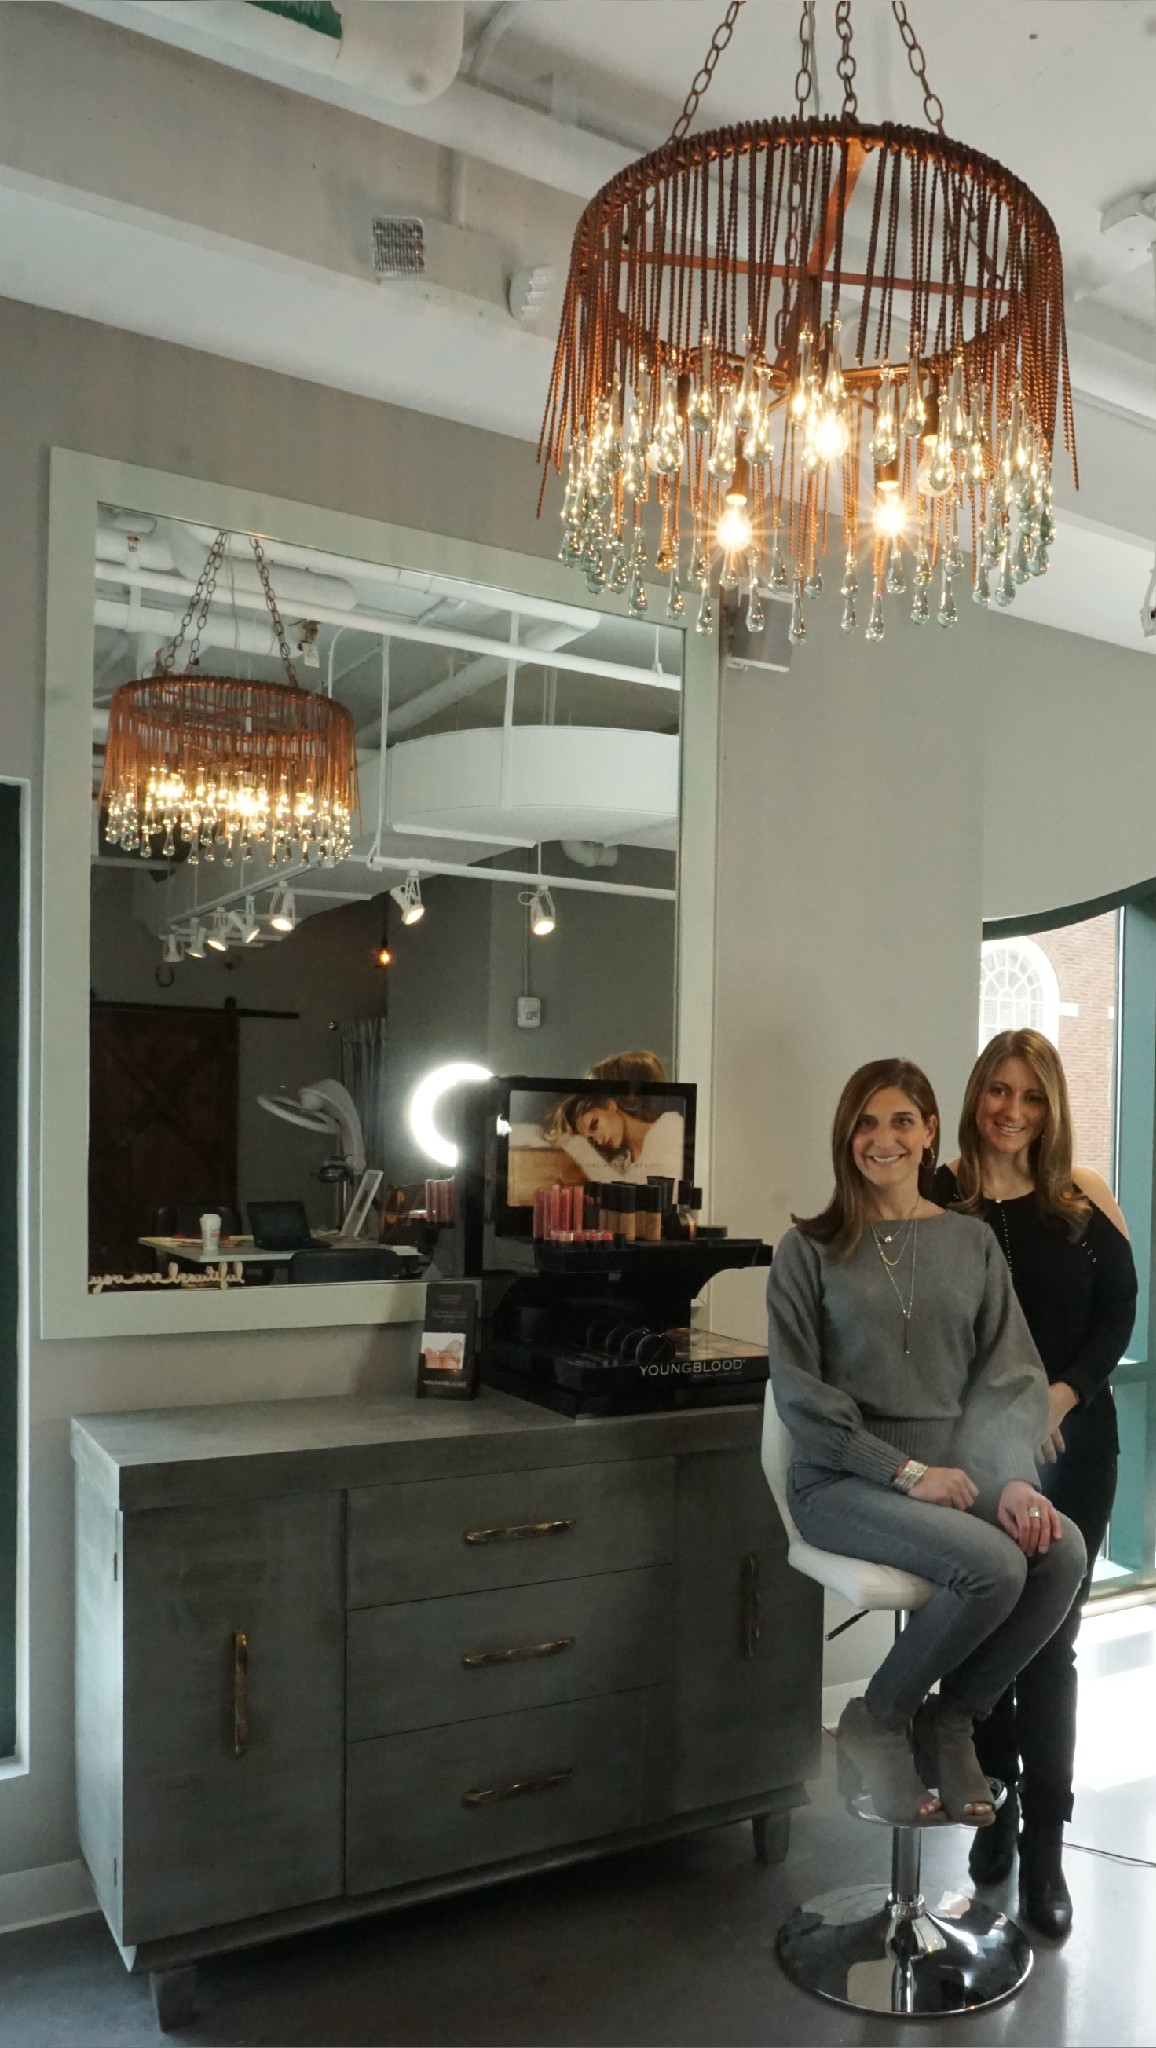 Whip Salon Is Rustic Chic In Westport Thanks To Romeo Baglio Design